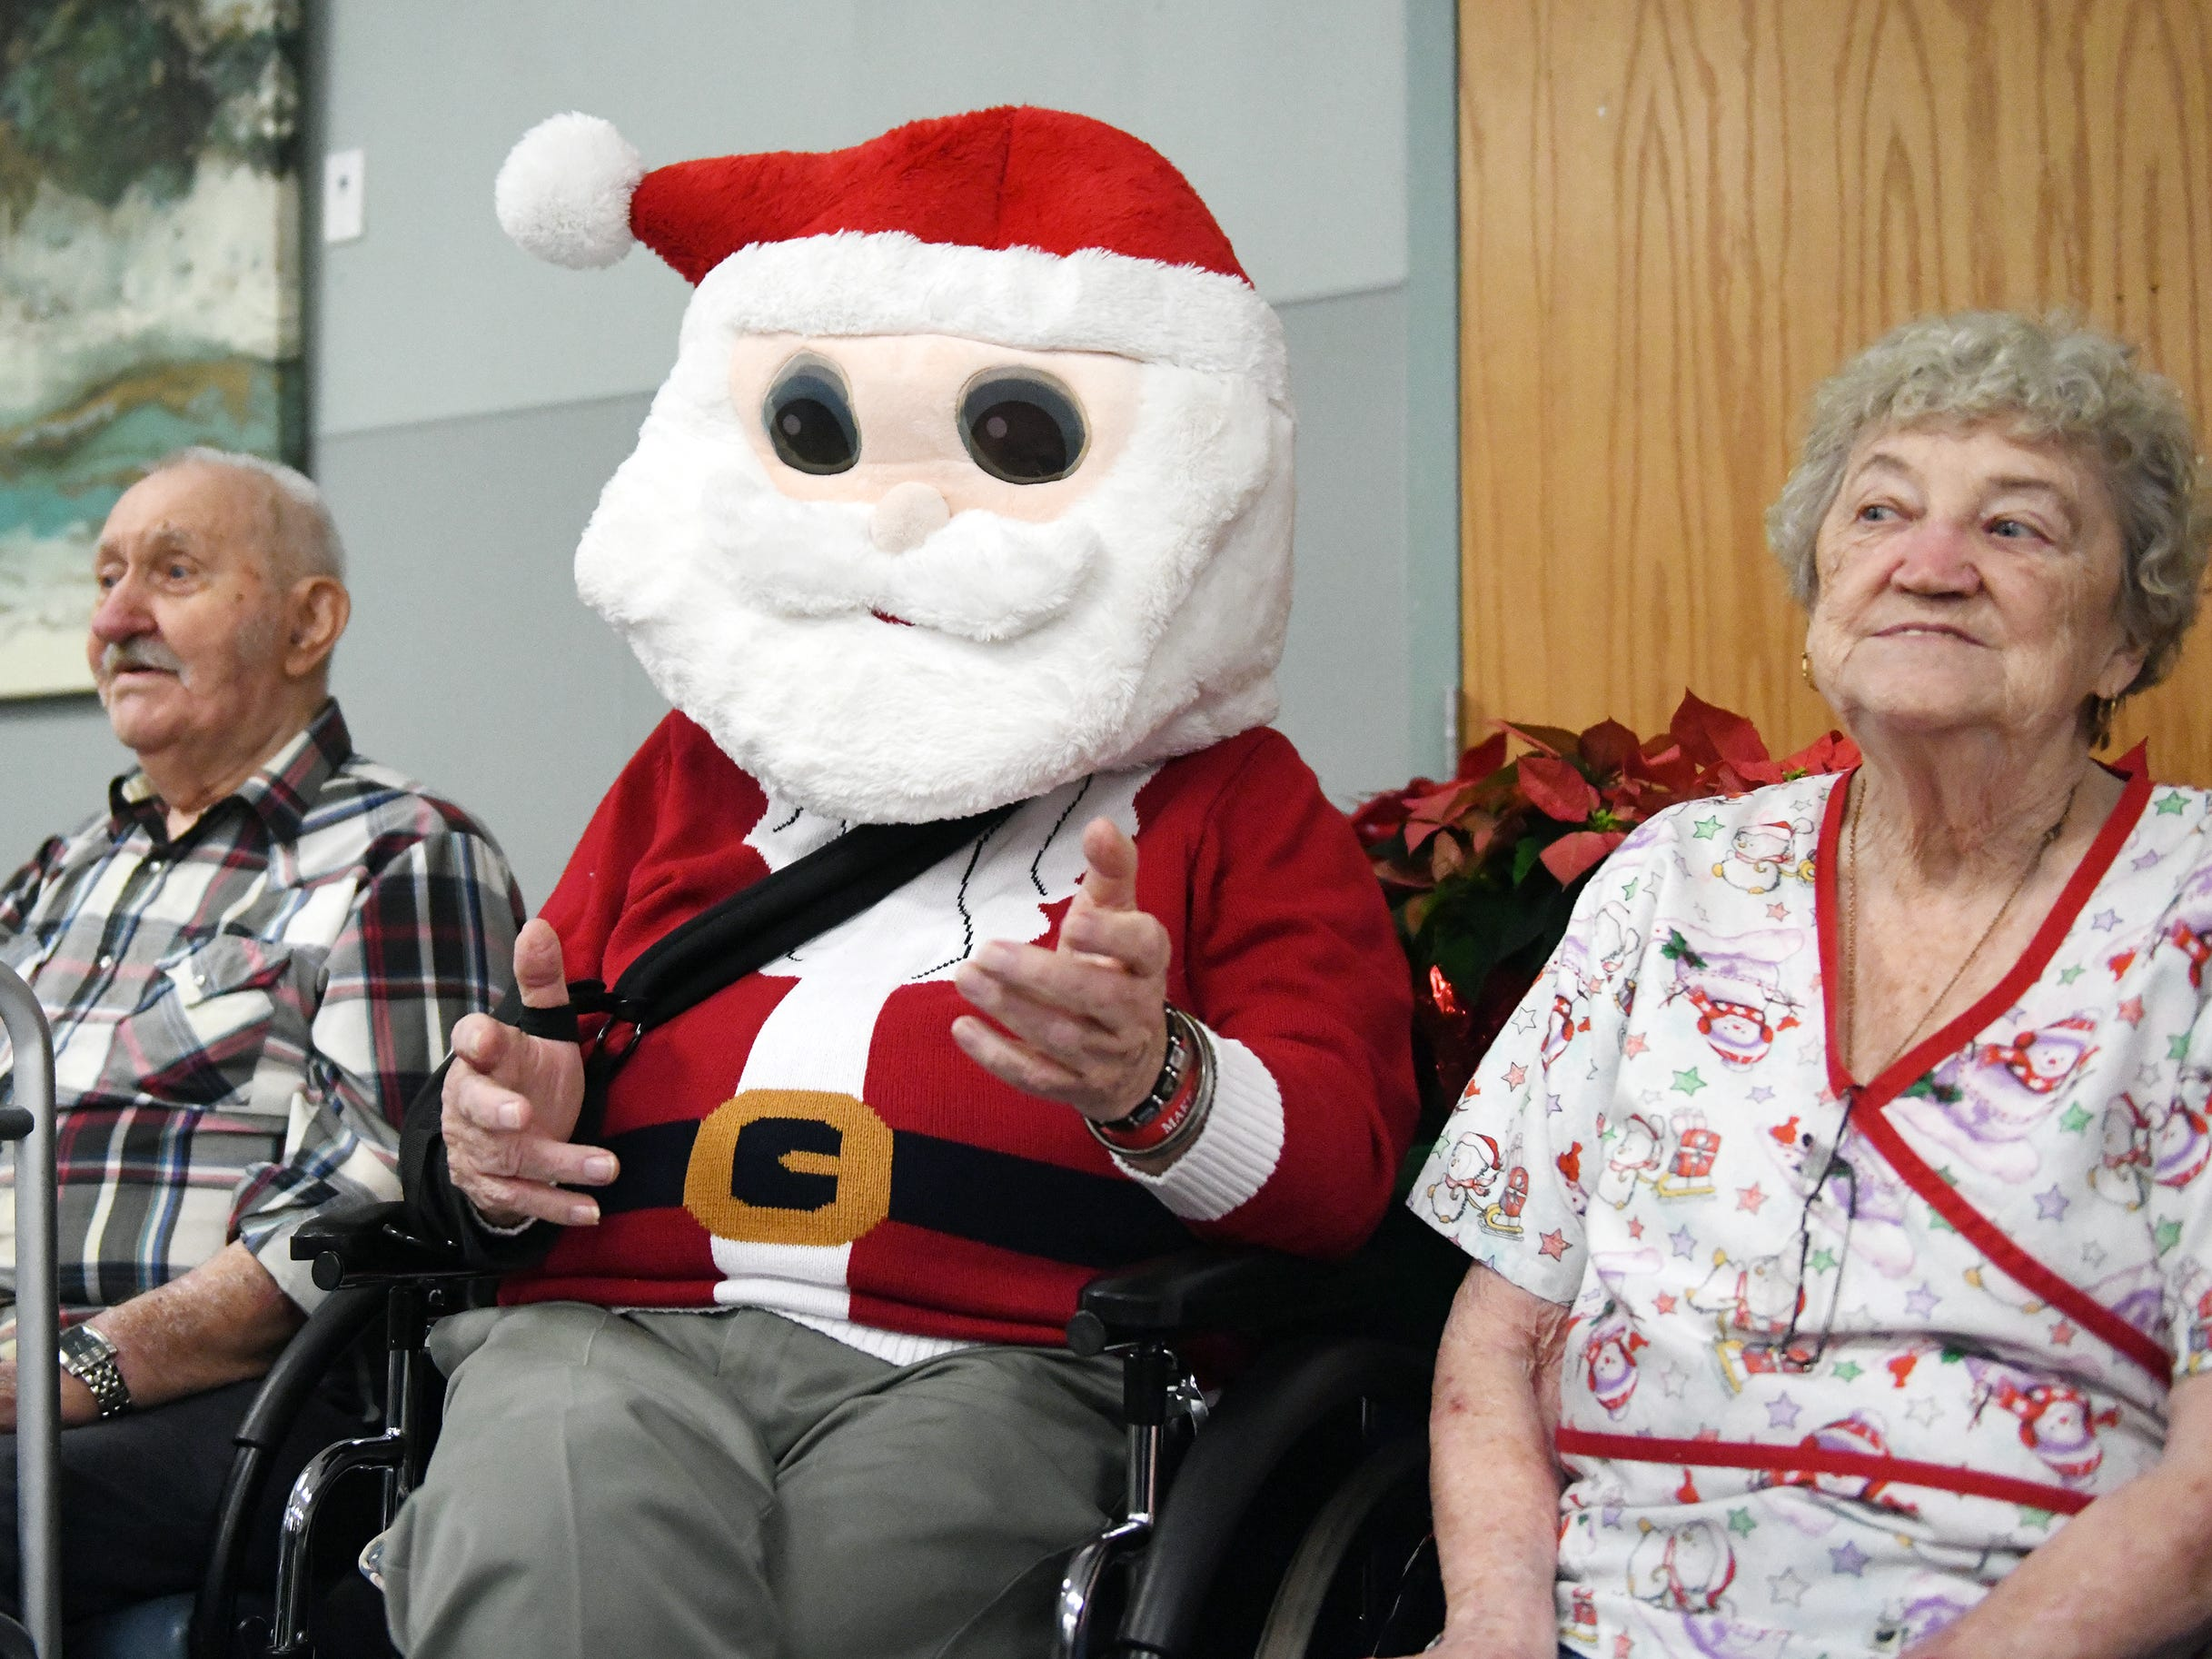 The non-profit group Second Wind Dreams and Boscov's teamed up to throw a big Christmas party for Veterans Memorial Home residents. Some 300 gifts were handed out to the veterans on Wednesday, December 19 in Vineland.